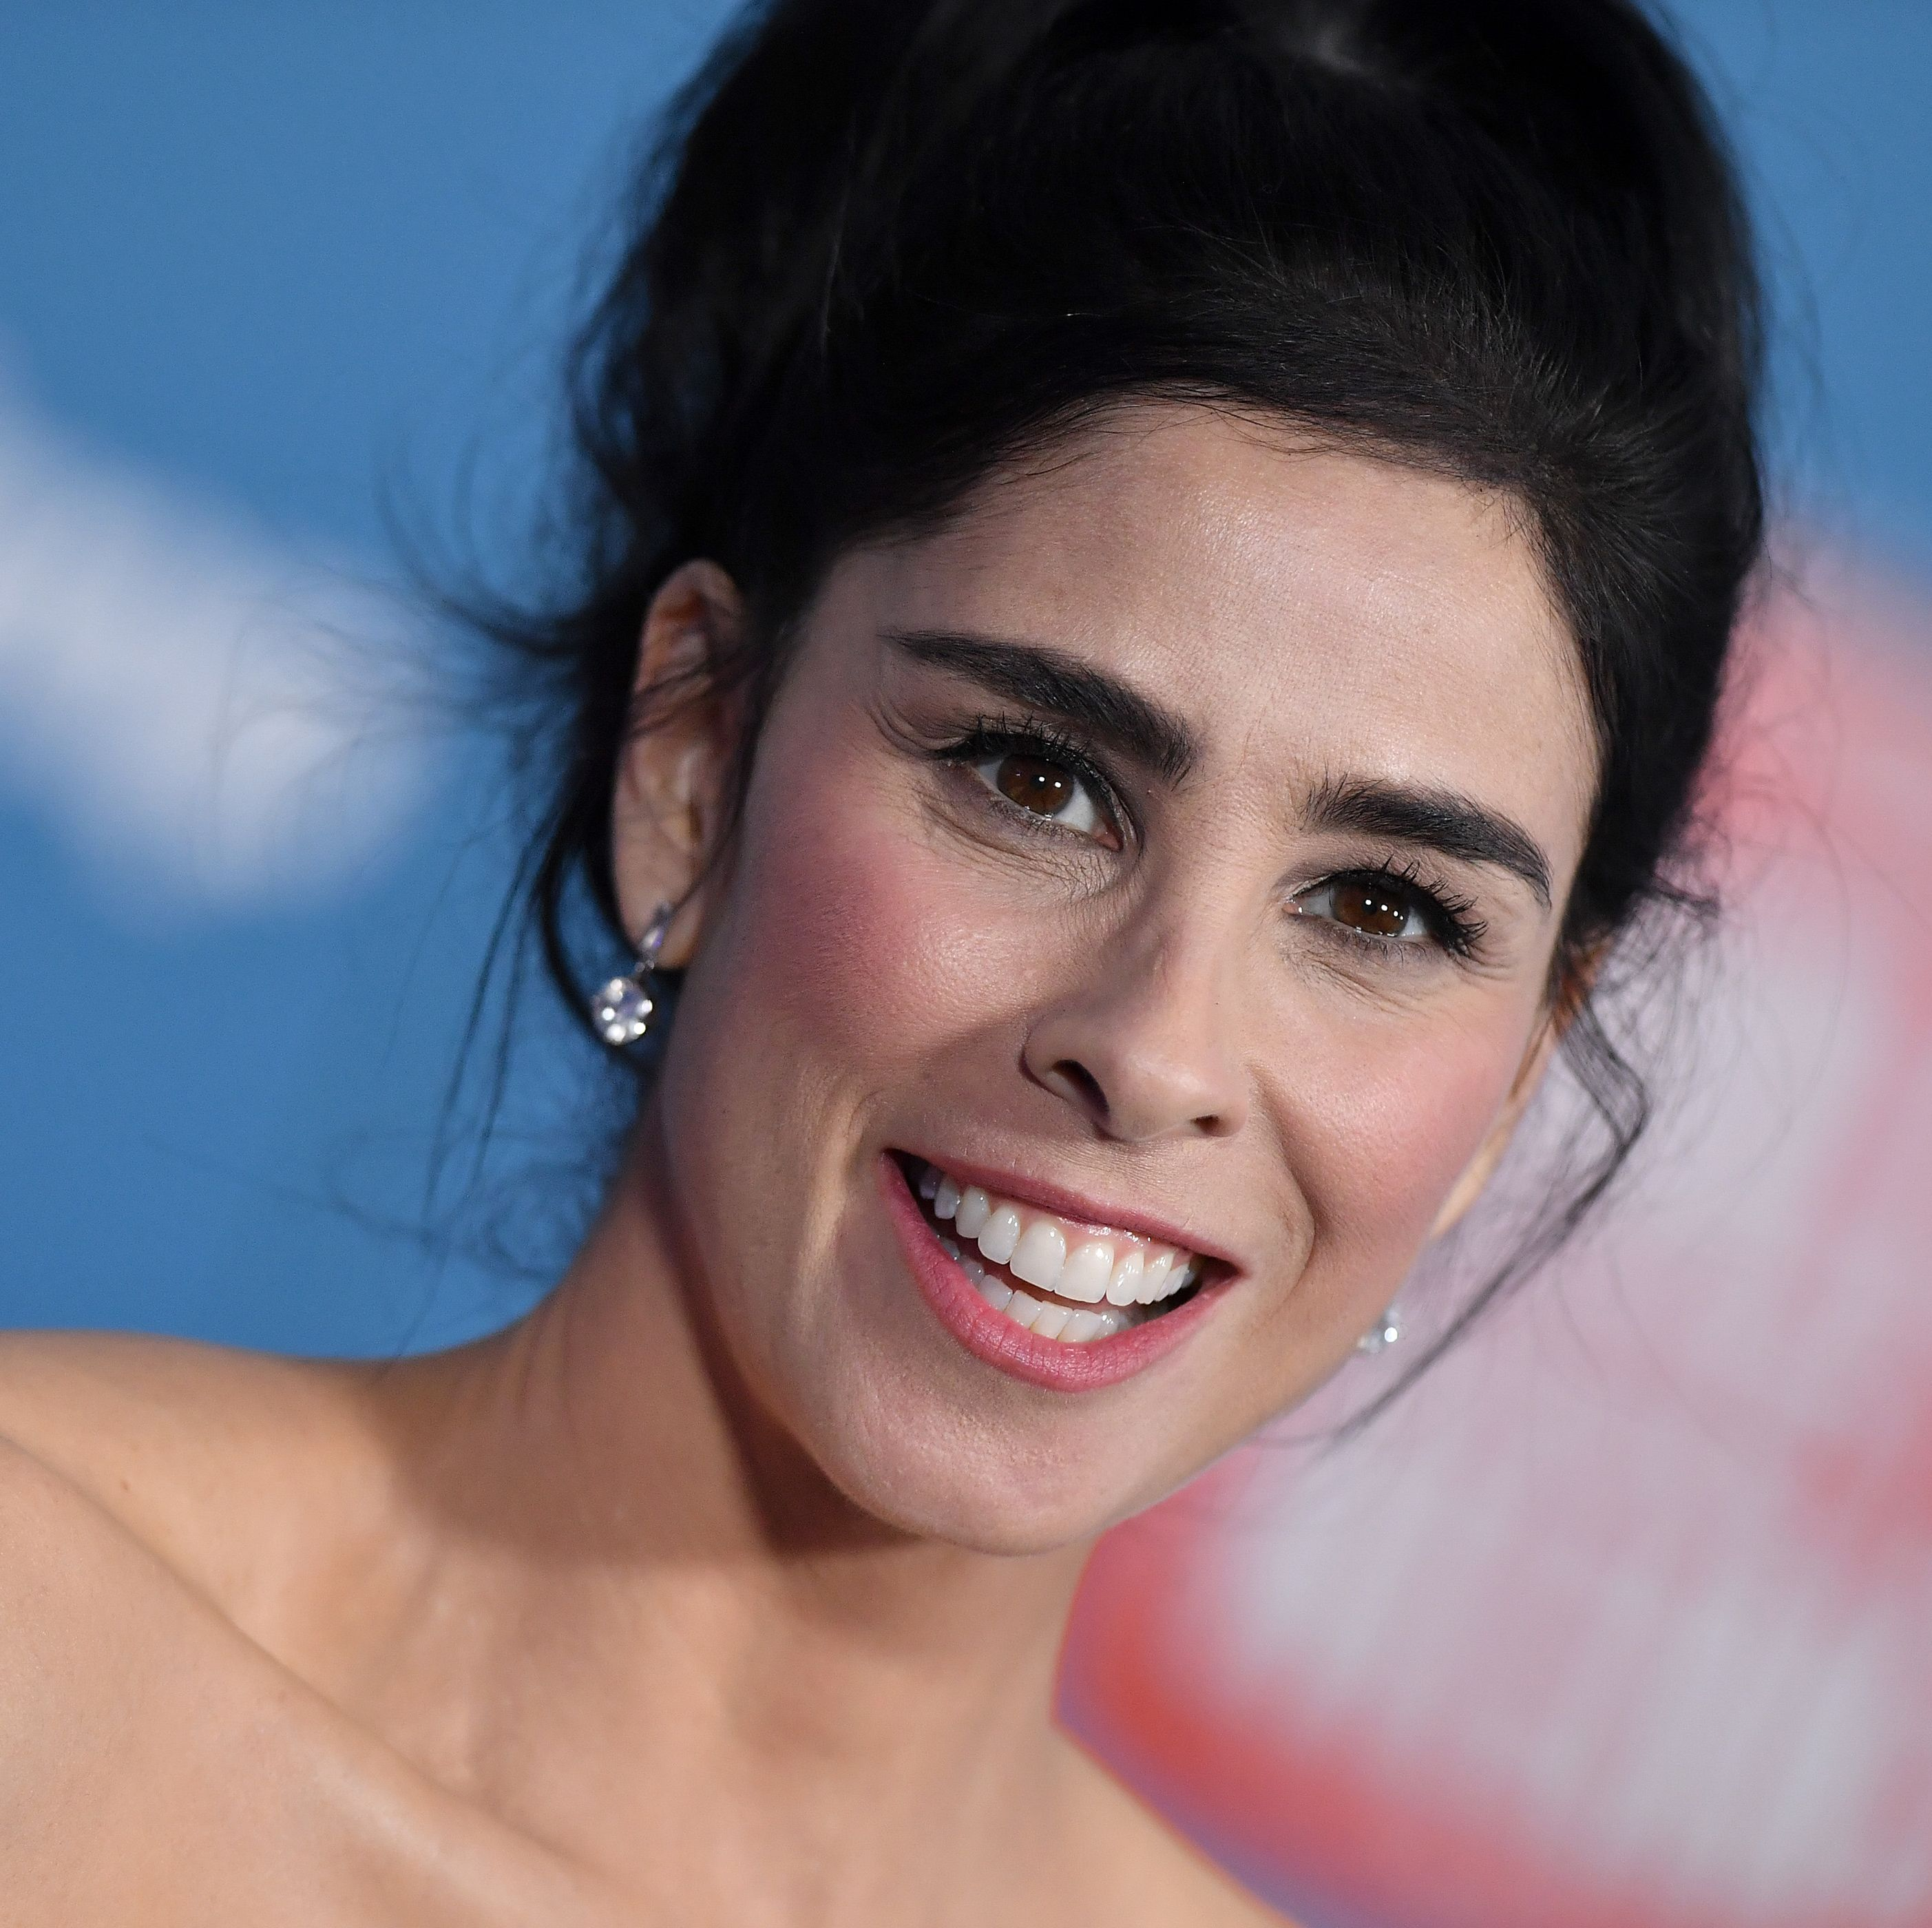 Sarah Silverman Got Waxed for the First Time—and Her Reaction Will Make You Cringe